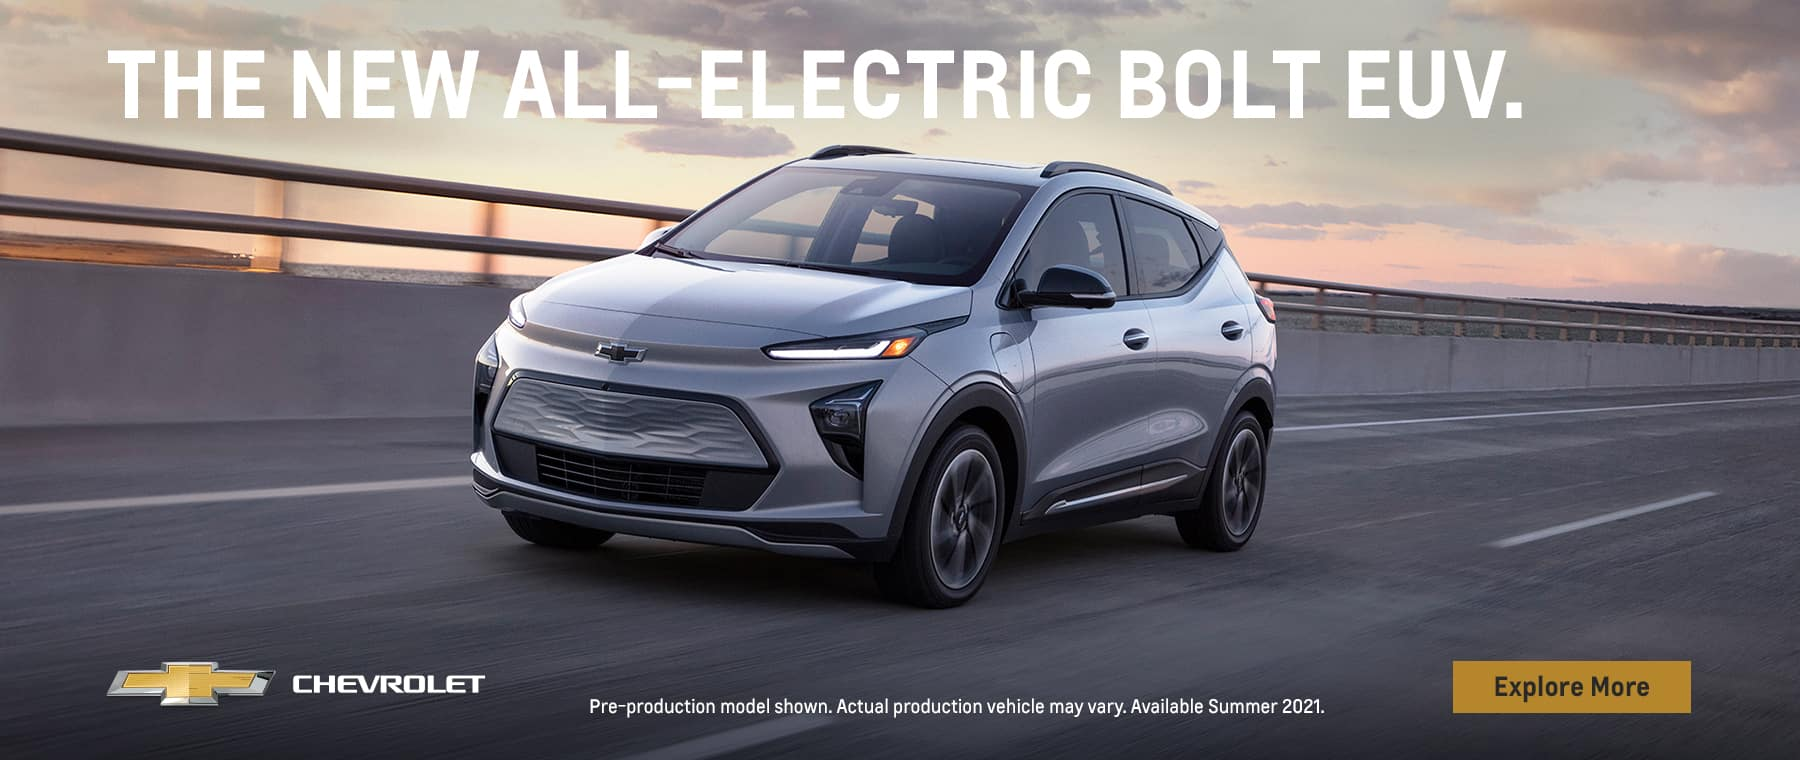 07_MAR_BOLT EUV REVEAL ALWAYS ON_1800x760